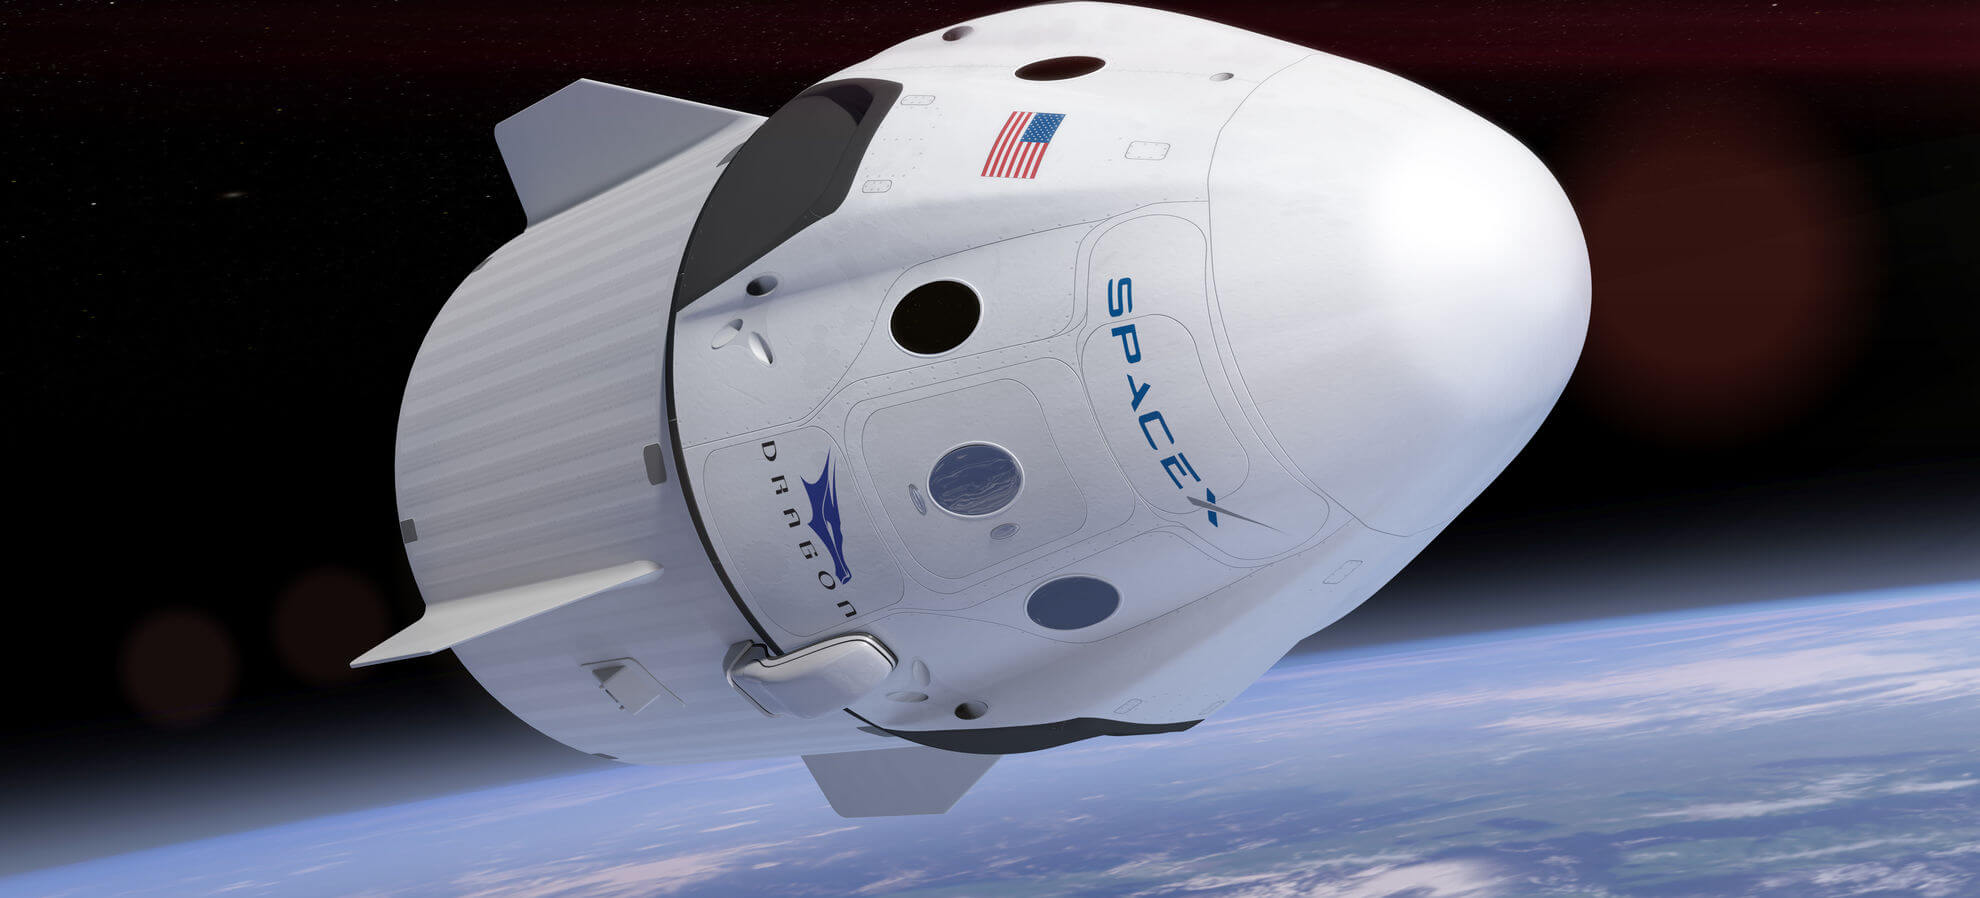 Trip to the Moon: SpaceX Is Starting Space Tourism